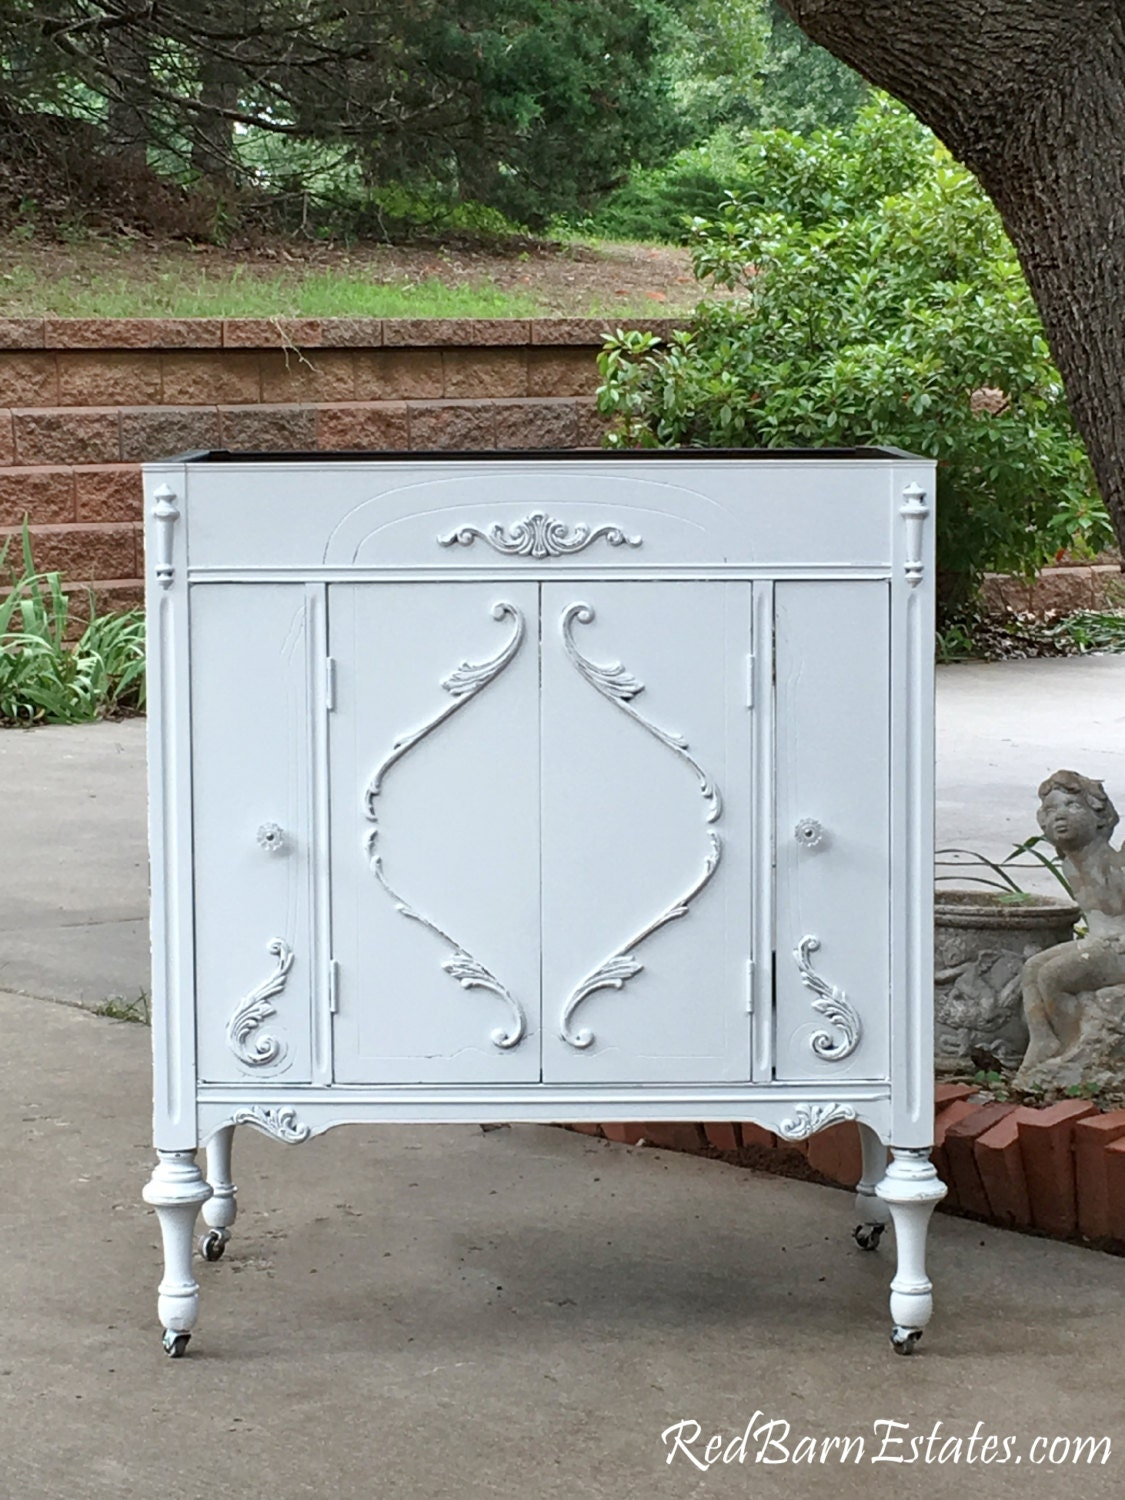 bathroom vanity shabby chic bathroom vanity cabinet converted from antique furniture 100 custom order - Bathroom Cabinets Shabby Chic